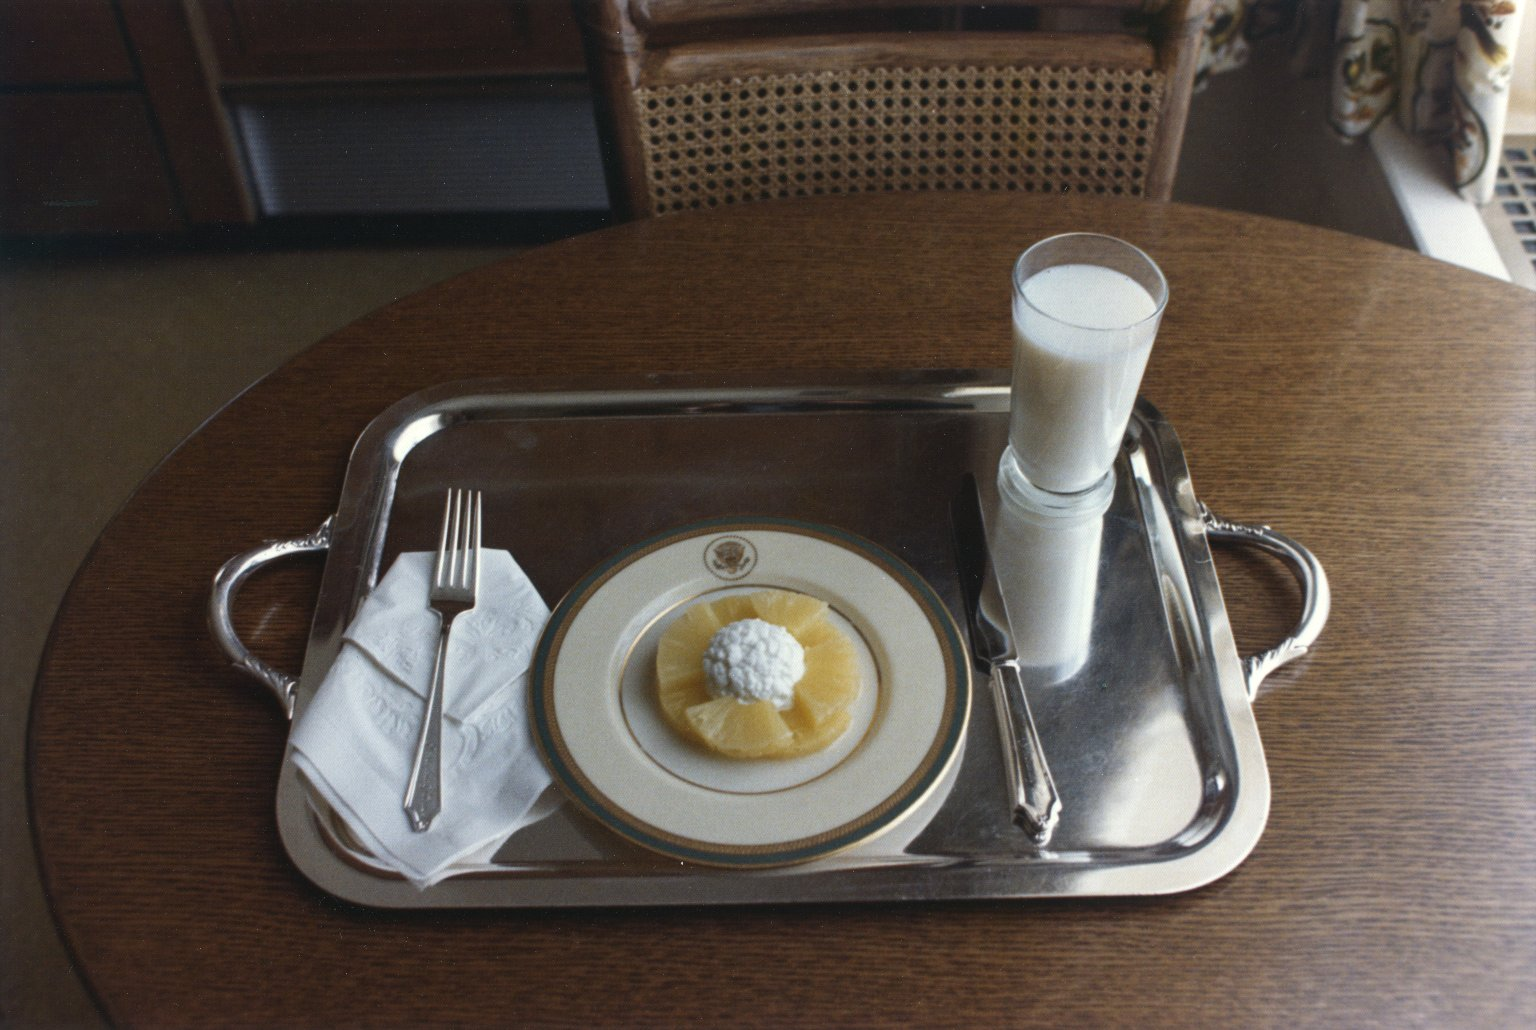 President Nixon's last meal in the White House: pineapple, cottage cheese and milk (August 9, 1974). Oliver F. Atkins photograph collection, Box 26, Folder 2. George Mason University. Libraries. Special Collections & Archives. Copyright not held by George Mason University Libraries. Restricted to personal, non-commercial use only. For permission to publish, contact Special Collections and Archives.